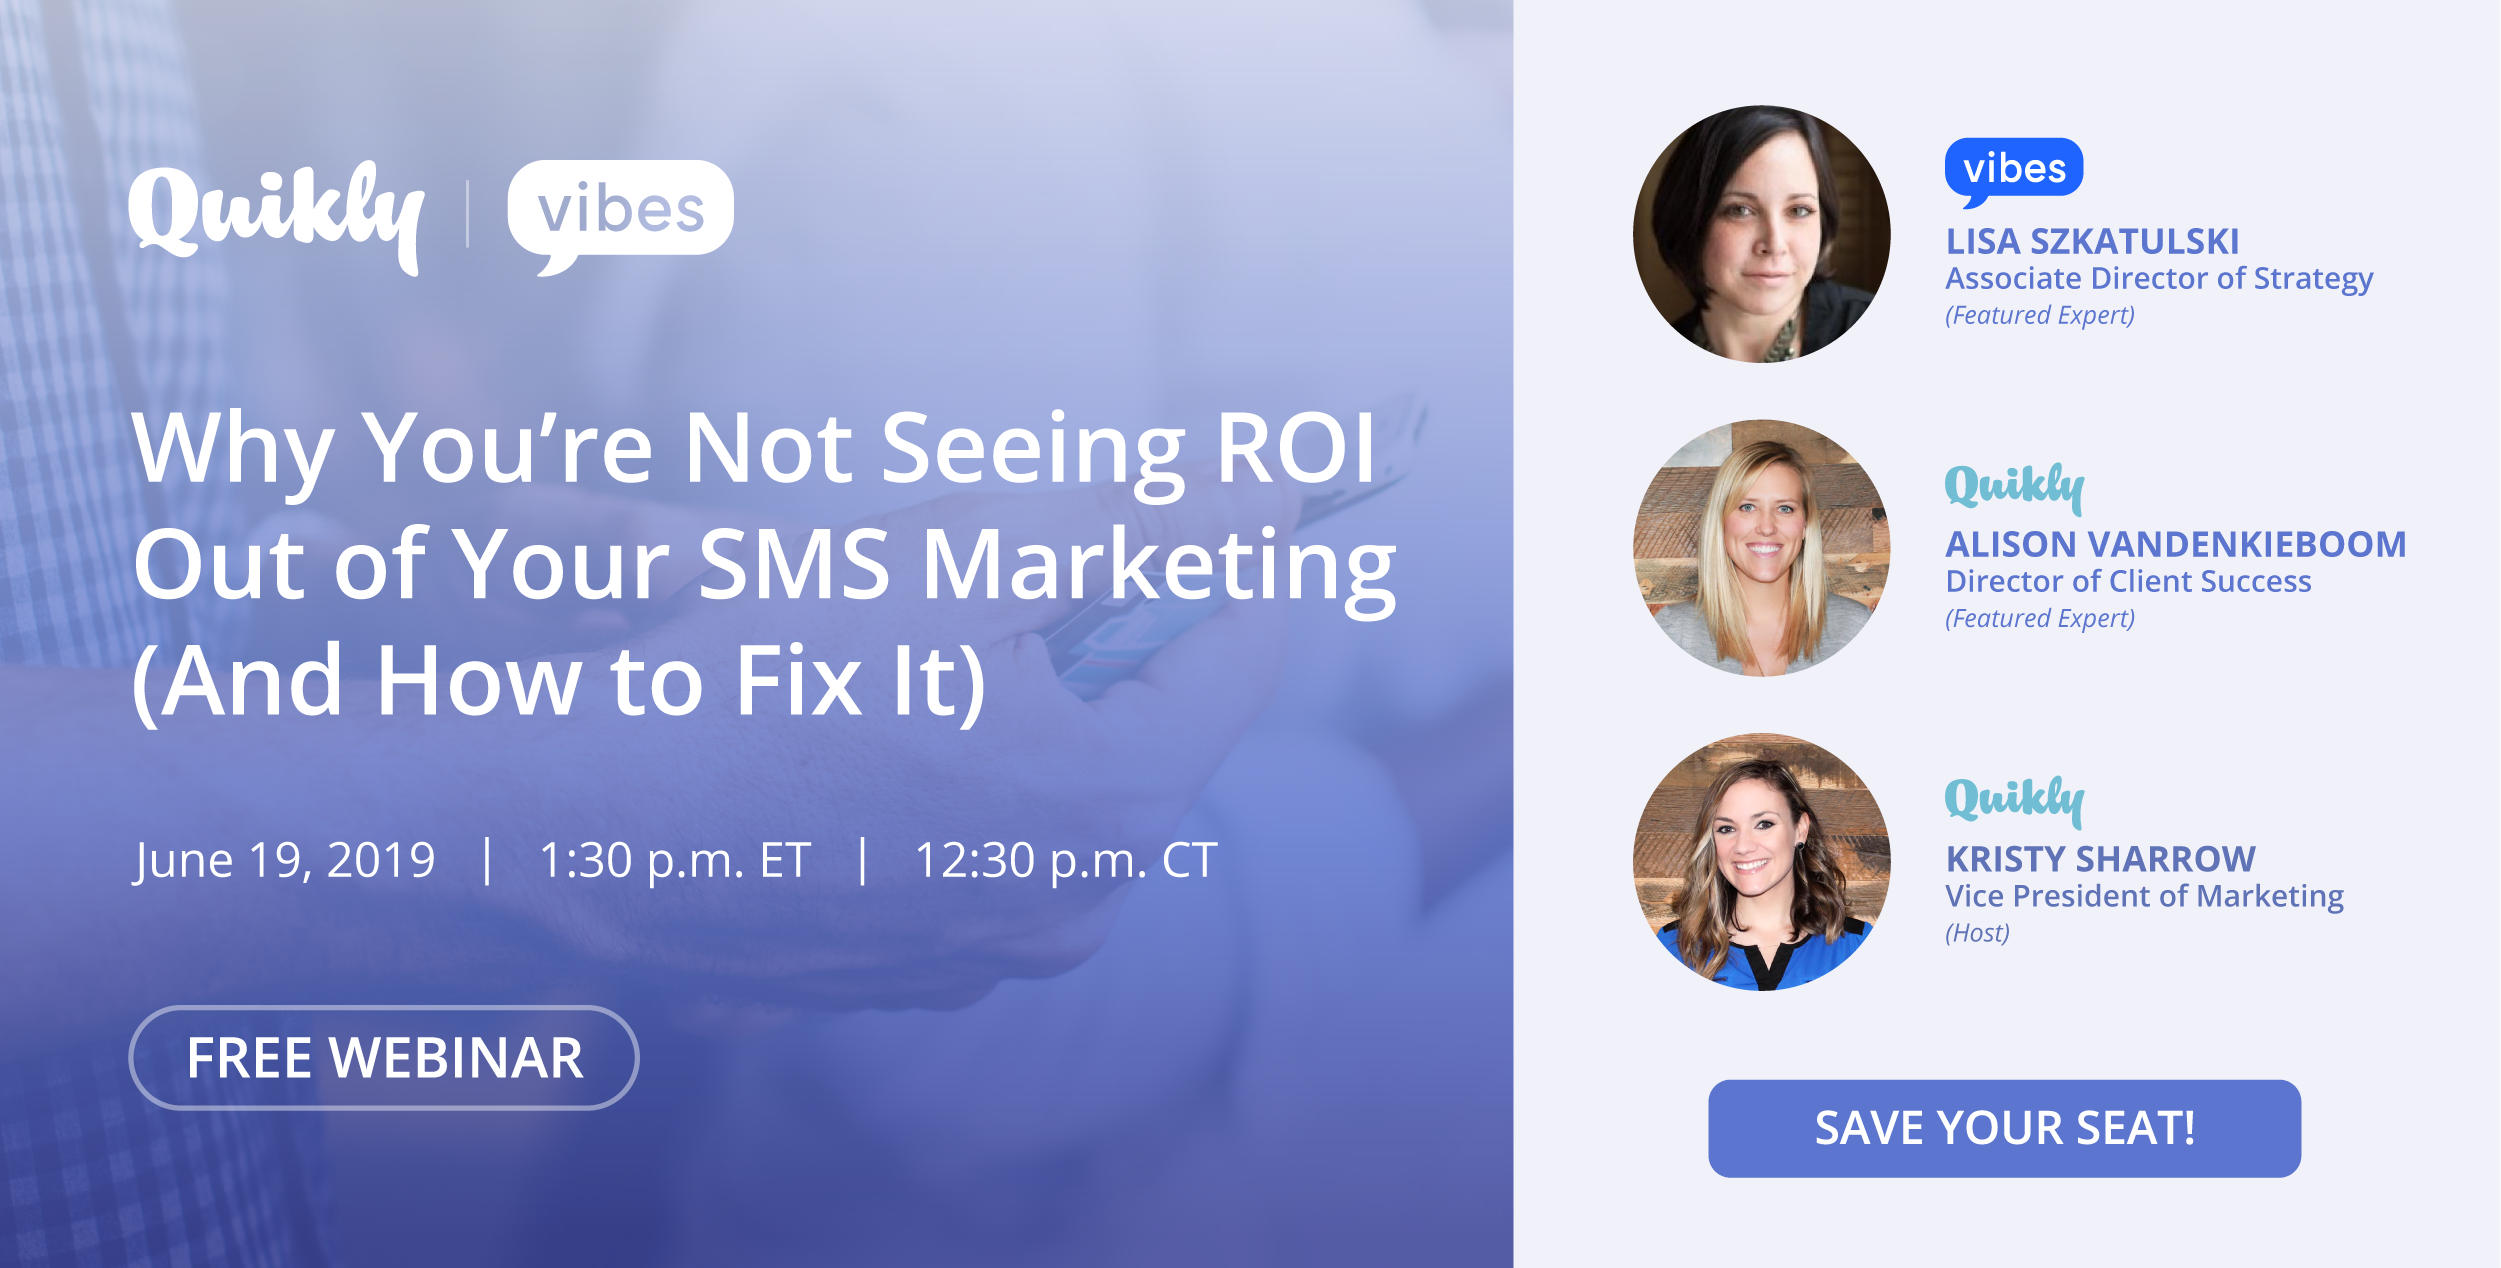 ad-webinar-not-seeing-roi-out-of-sms-marketing